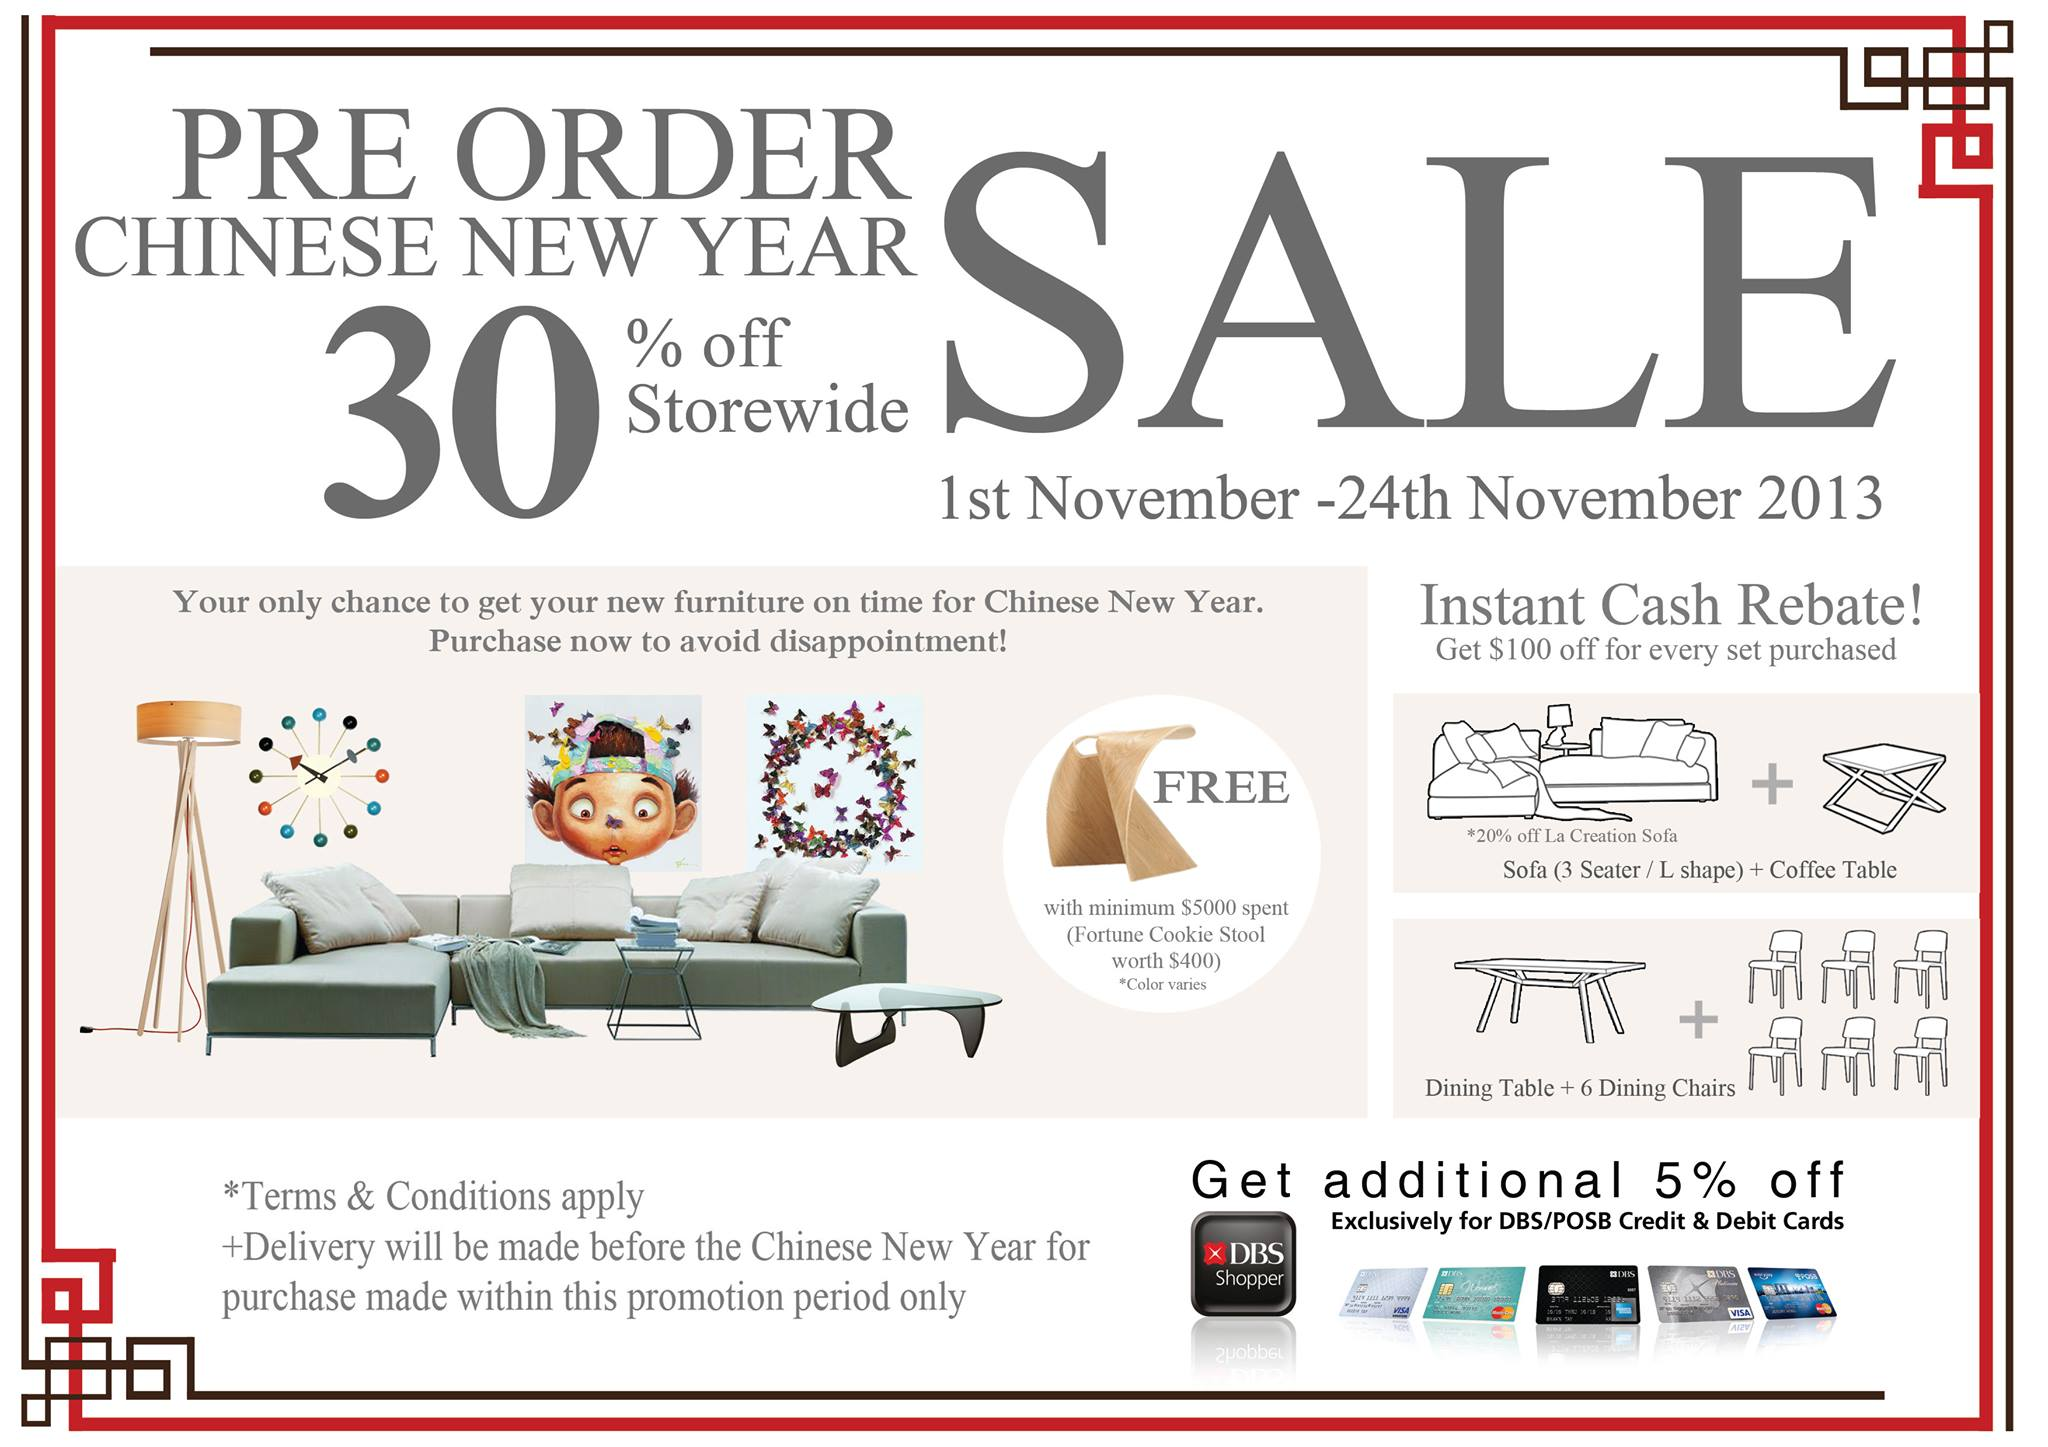 Lush Furniture Pre-Order Chinese New Year Sale 2014: 30% Off When You Order Before 24th Nov 2013